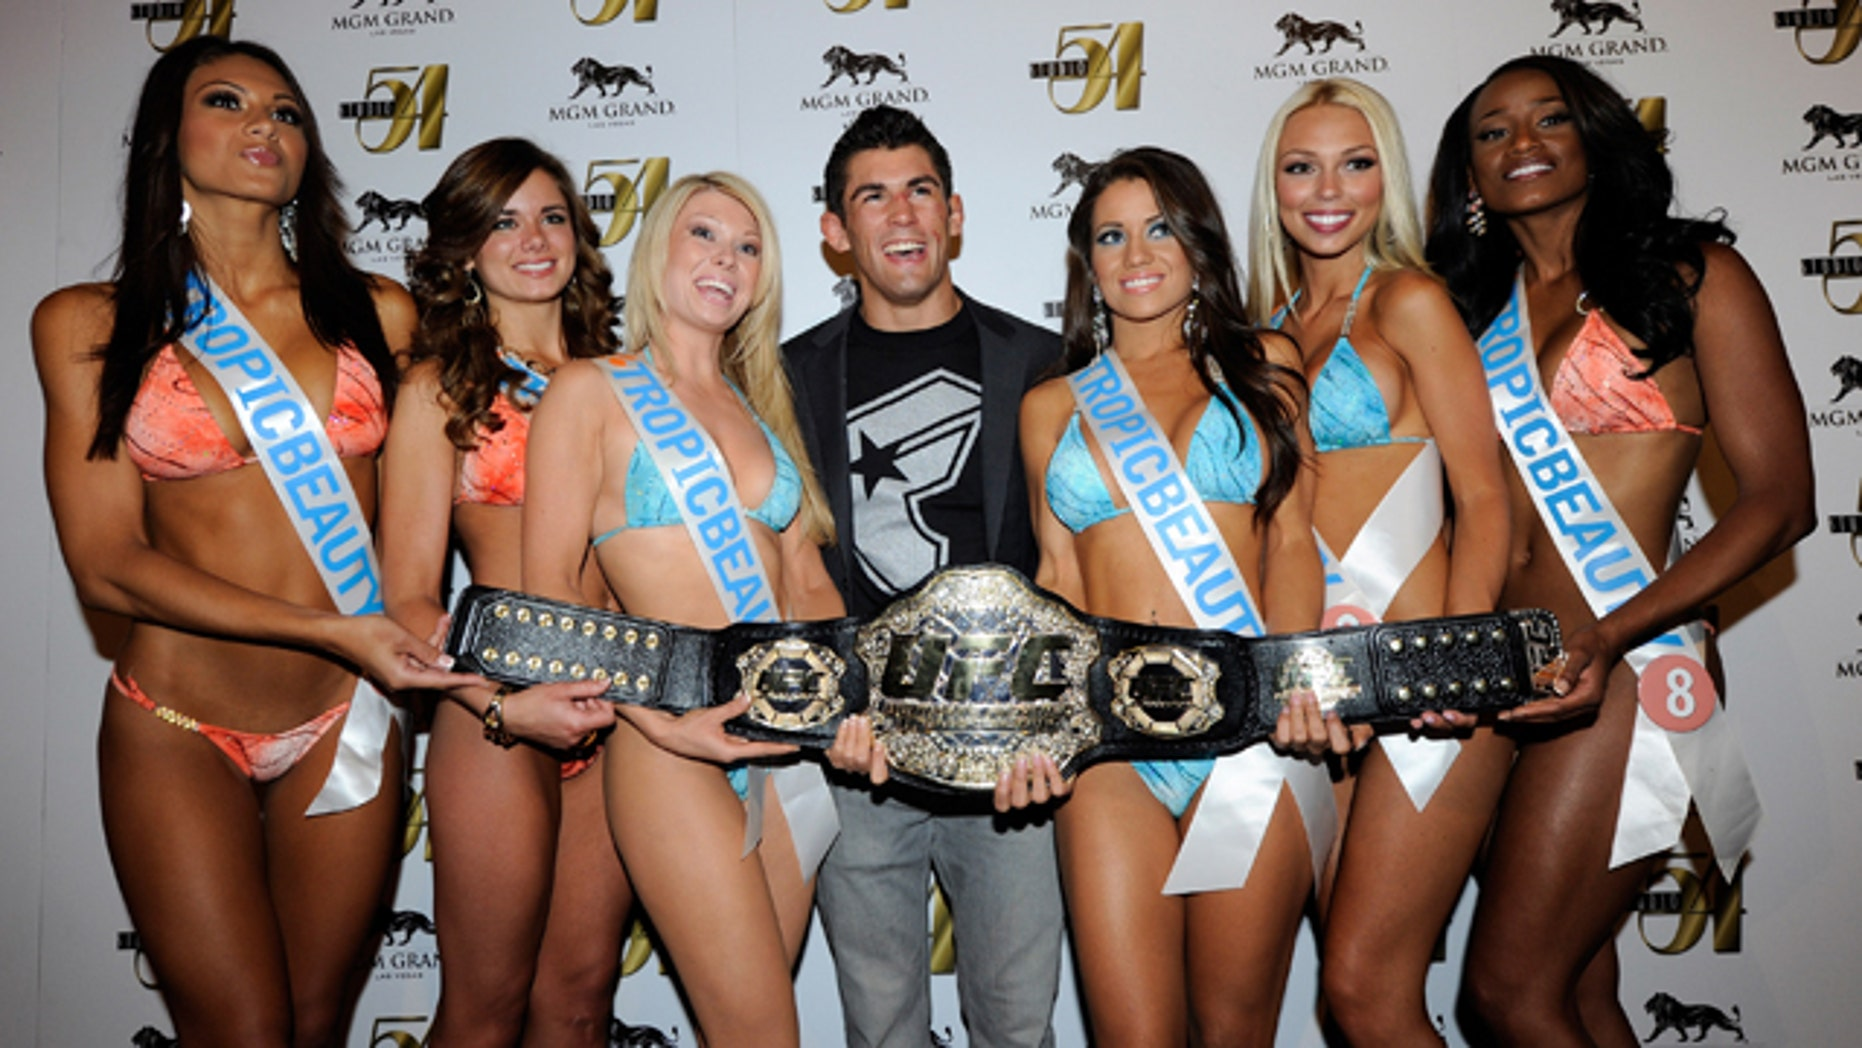 File Photo: Mixed martial artist Dominick Cruz (C) and Tropic Beauty Model Search contestants arrive at a post-fight party for UFC 132 at Studio 54 inside the MGM Grand Hotel/Casino early July 3, 2011 in Las Vegas, Nevada.  (Photo by Ethan Miller/Getty Images for Studio 54)